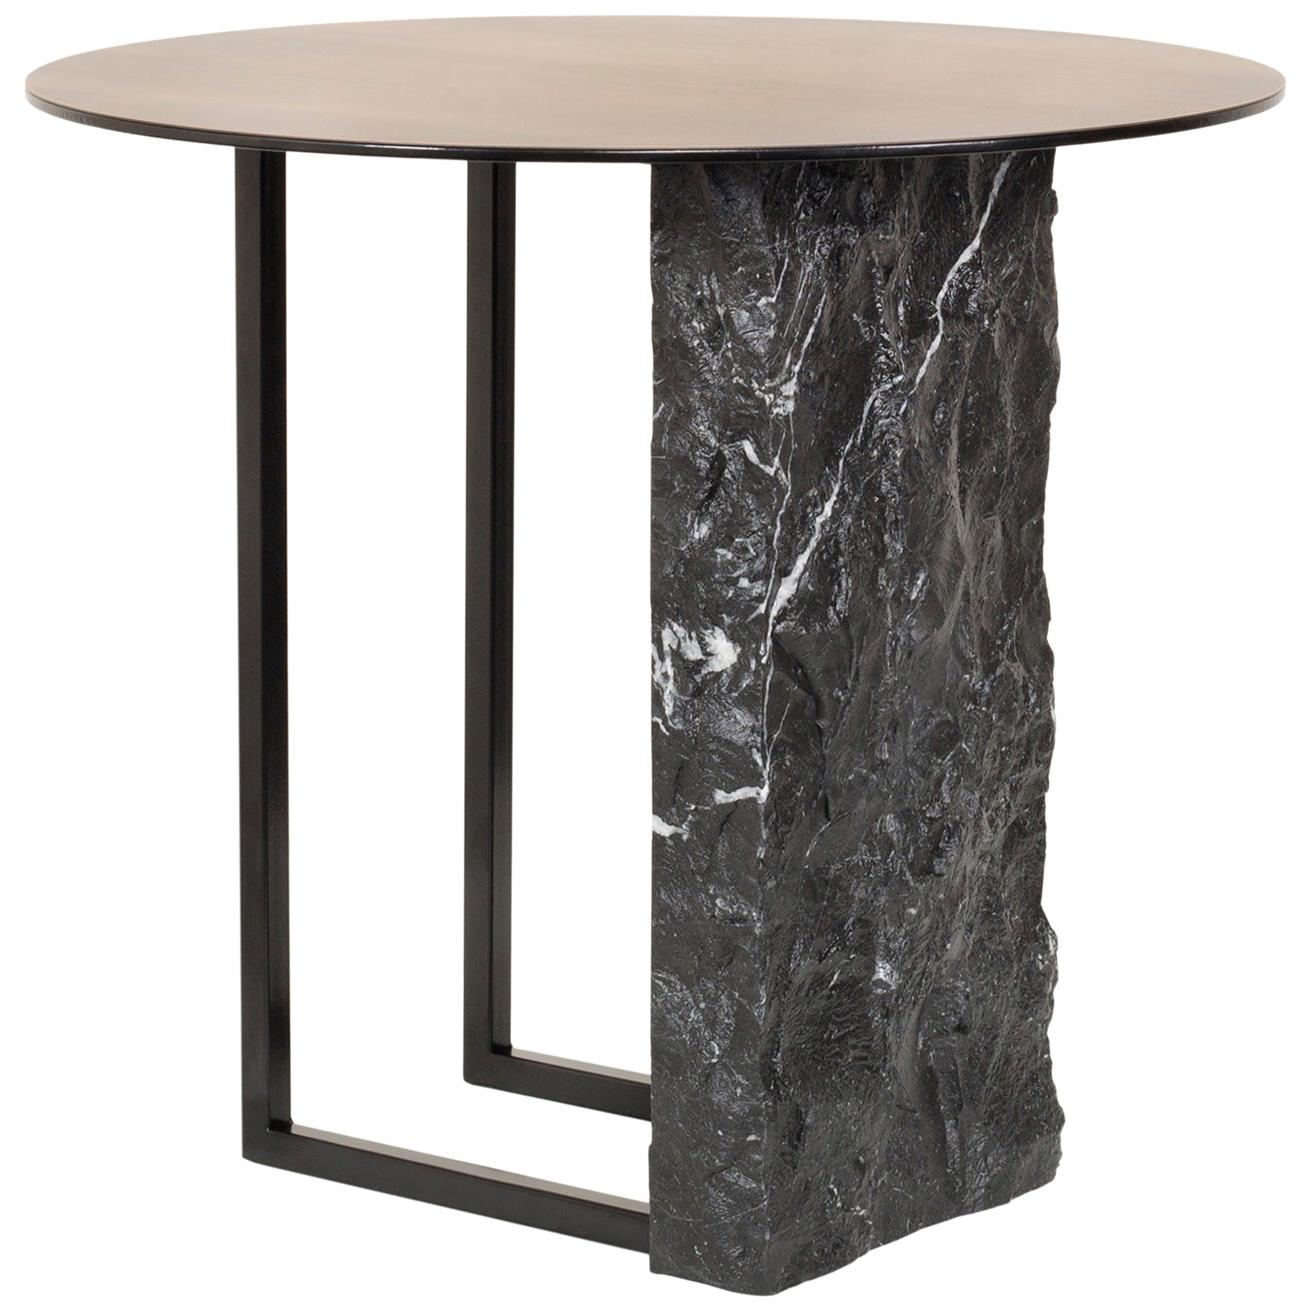 Aire Side Table L Nero Marquina Marble Dark Oxidized Brass Black Lacquered